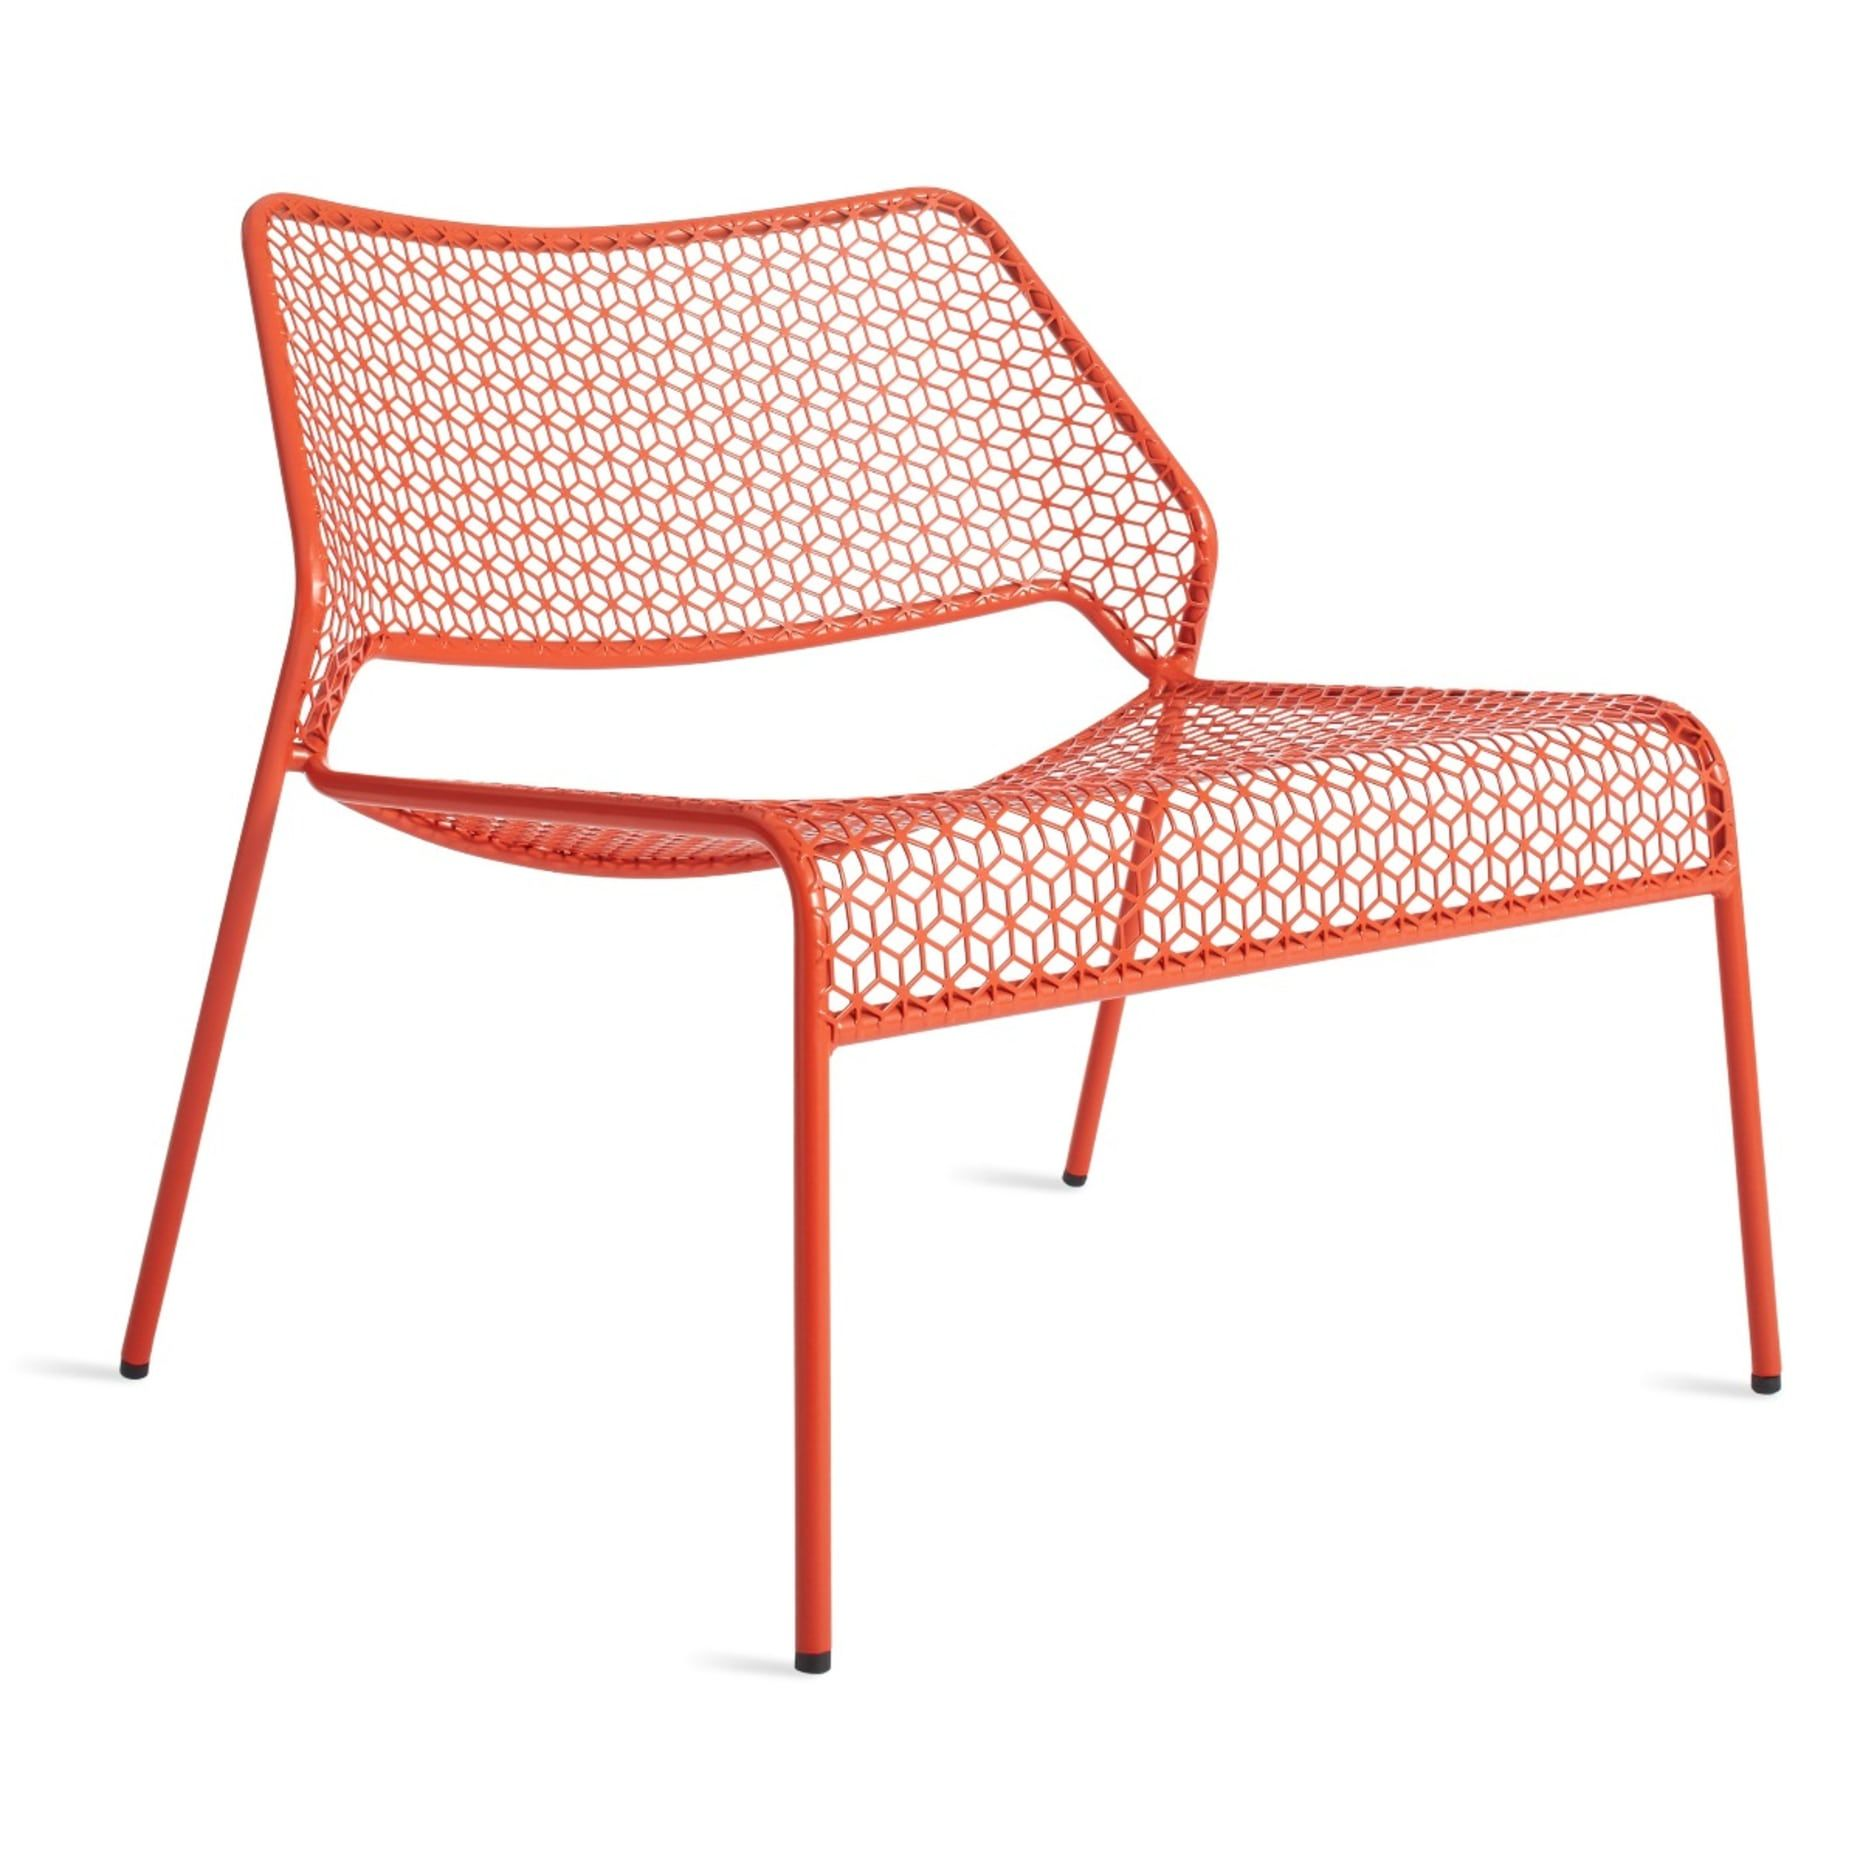 Hot Mesh Lounge Chair Natural Yellow Outdoor Furniture Outdoor Wicker Chairs Outdoor Chairs